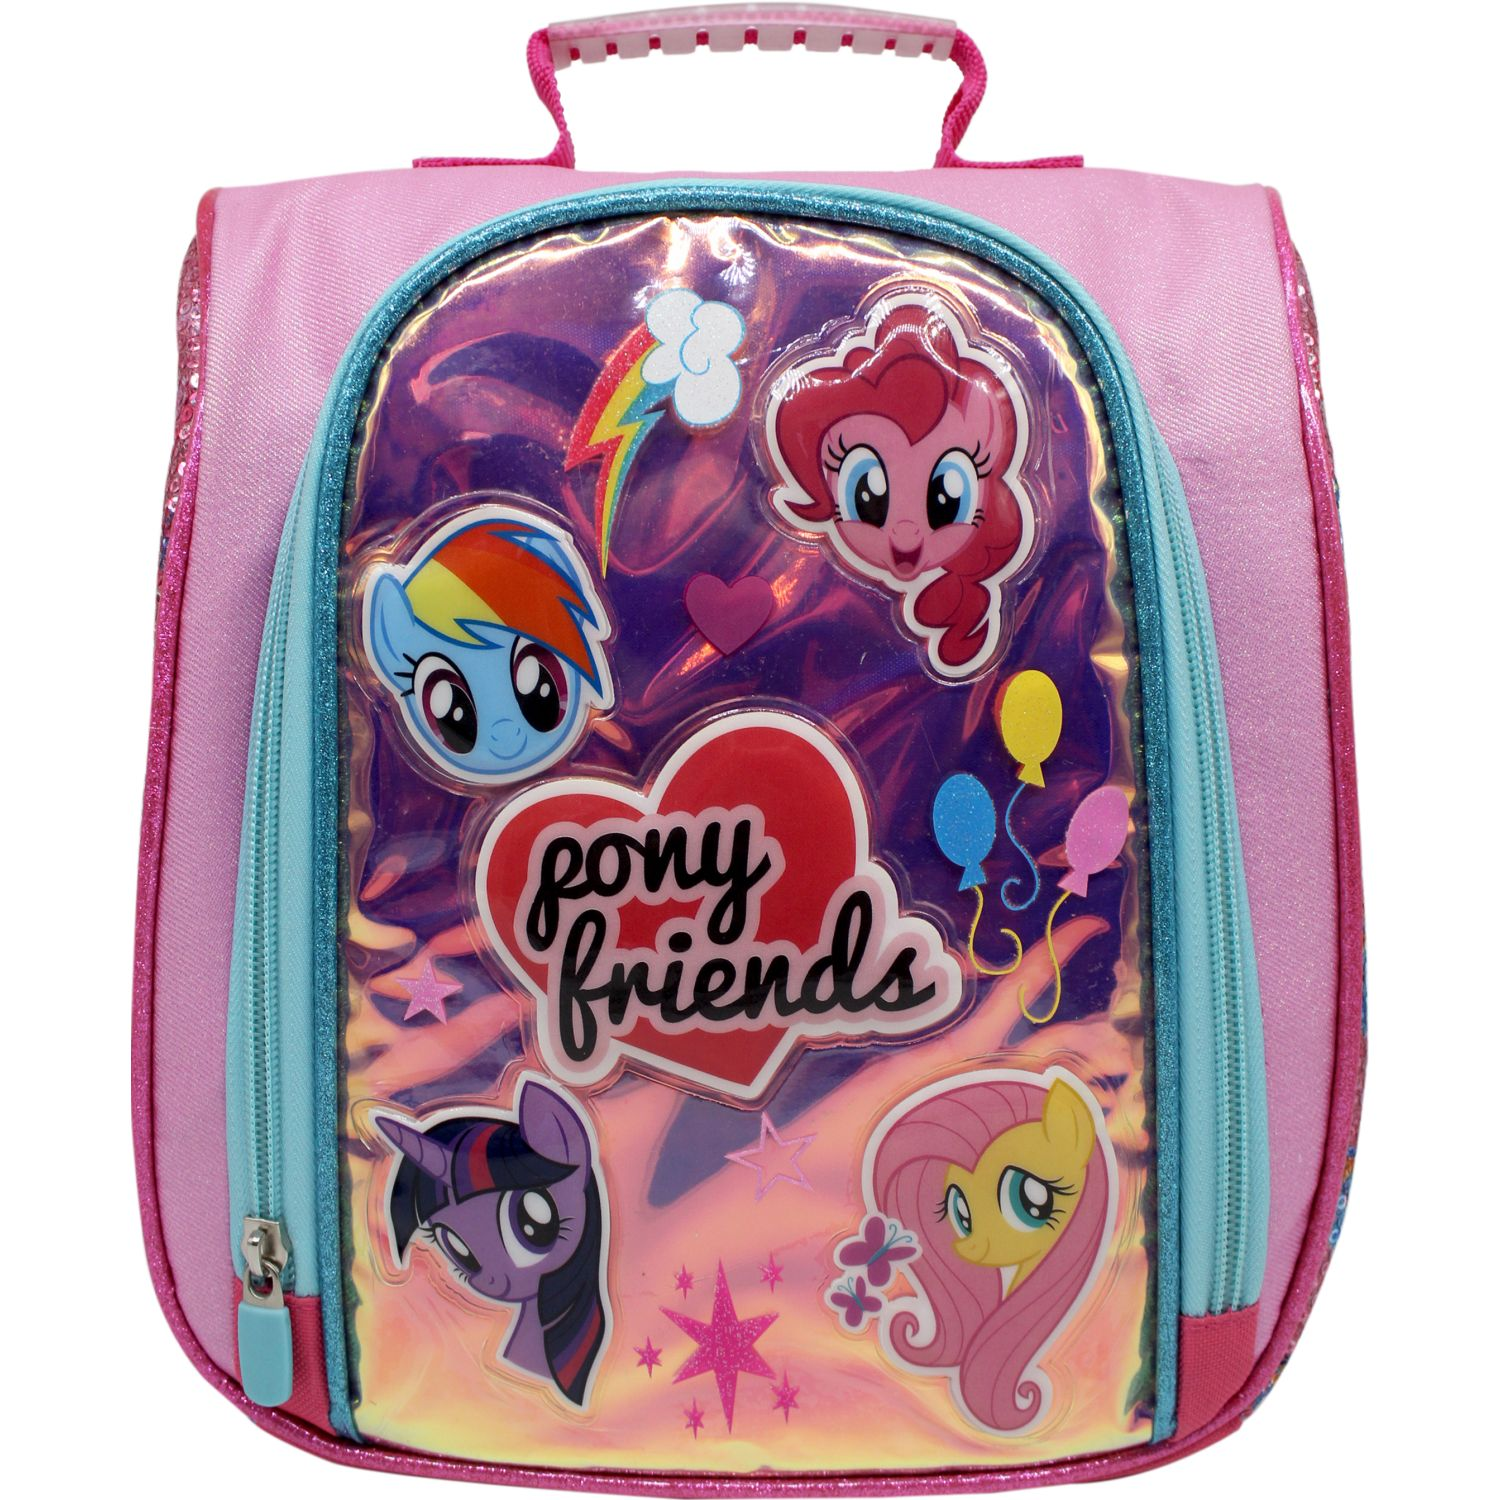 My Little Pony lonchera my little pony Rosado / celeste Loncheras